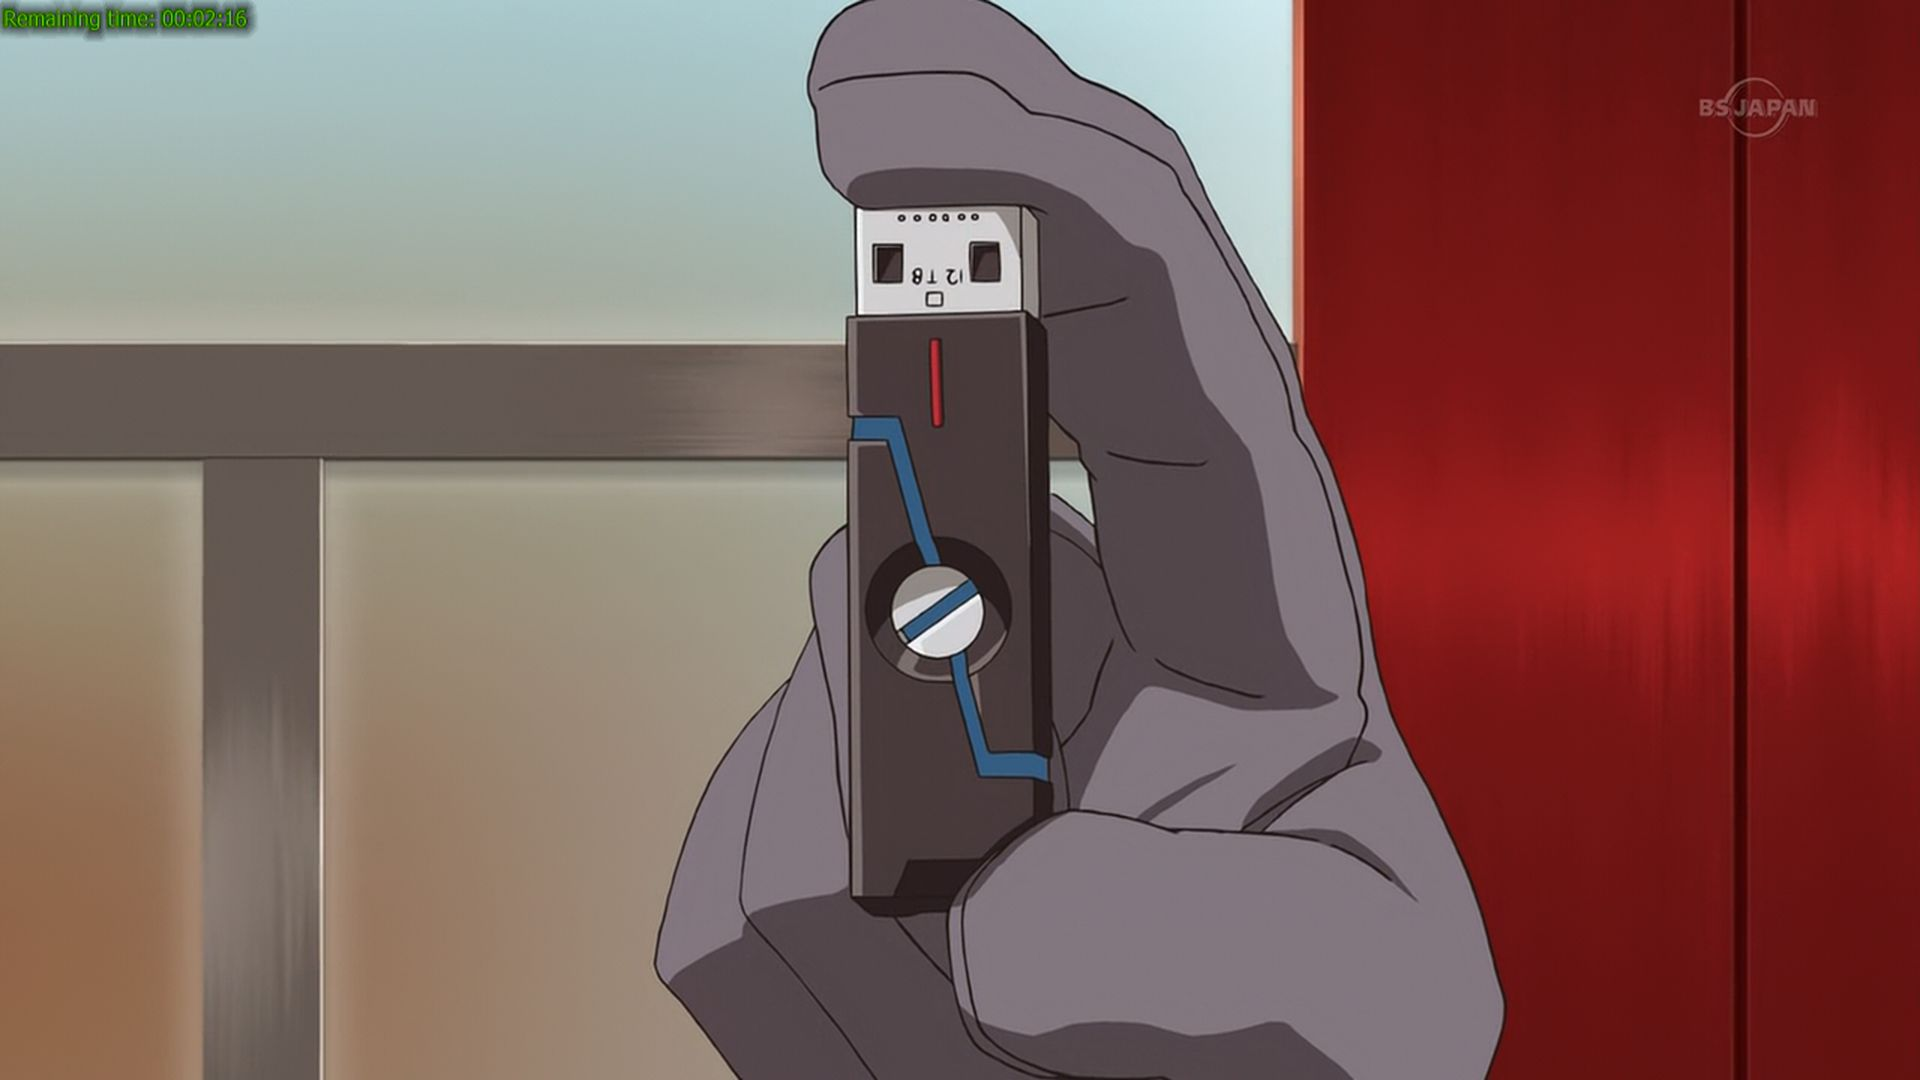 Personally, the greatest device you can find in this anime version of 2050 is not the LBX or the fortified cardboard, but the 12 Terabytes pen drive as shown above. It is funny though that that pen drive still use USB connector instead of something like Thunderbolt connector. Transferring files into/from that pendrive will surely takes hours!